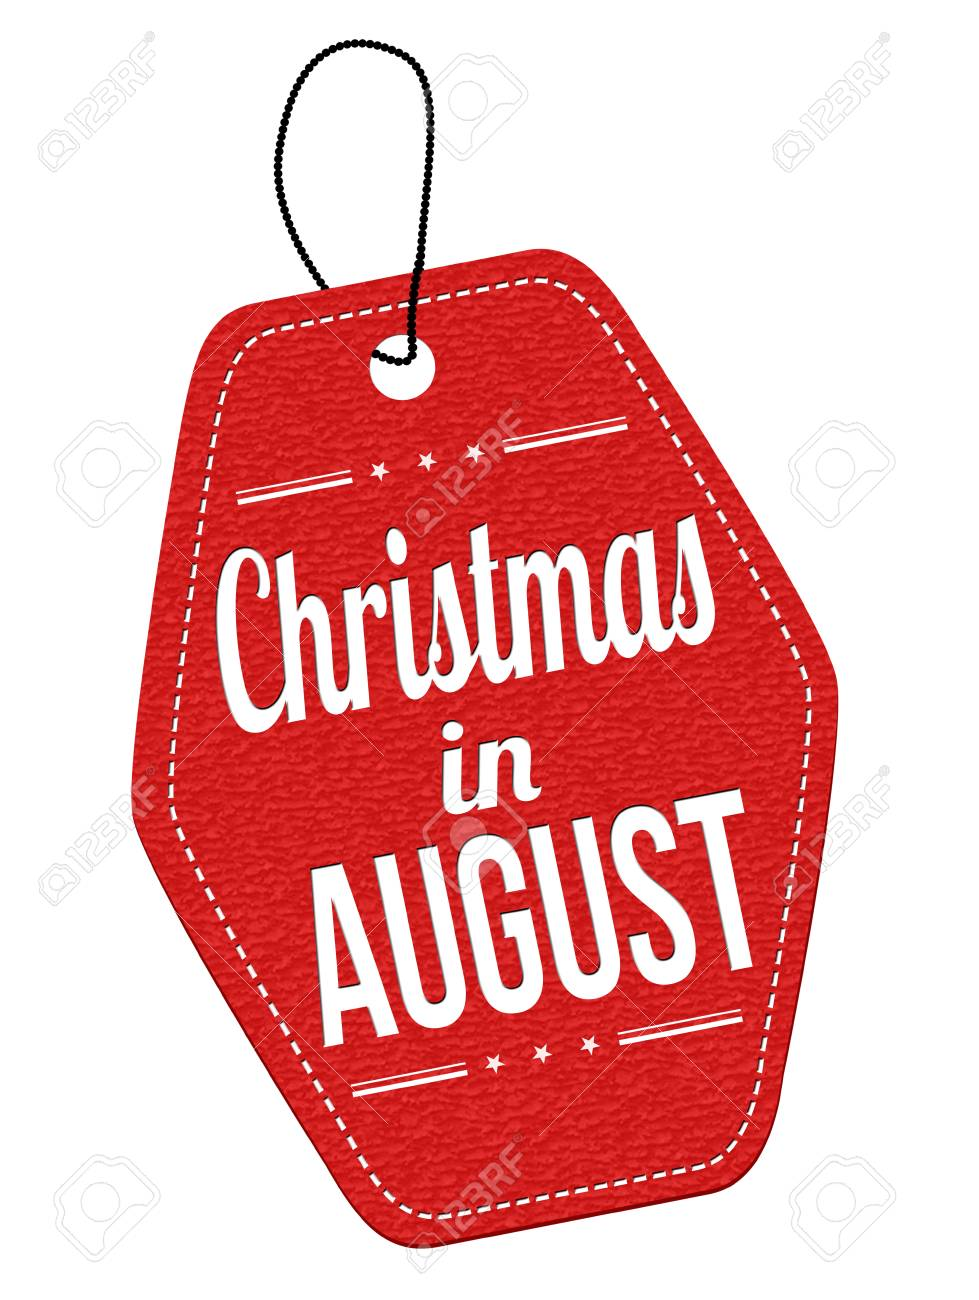 Christmas In August Clipart.Christmas In August Red Leather Label Or Price Tag On White Background